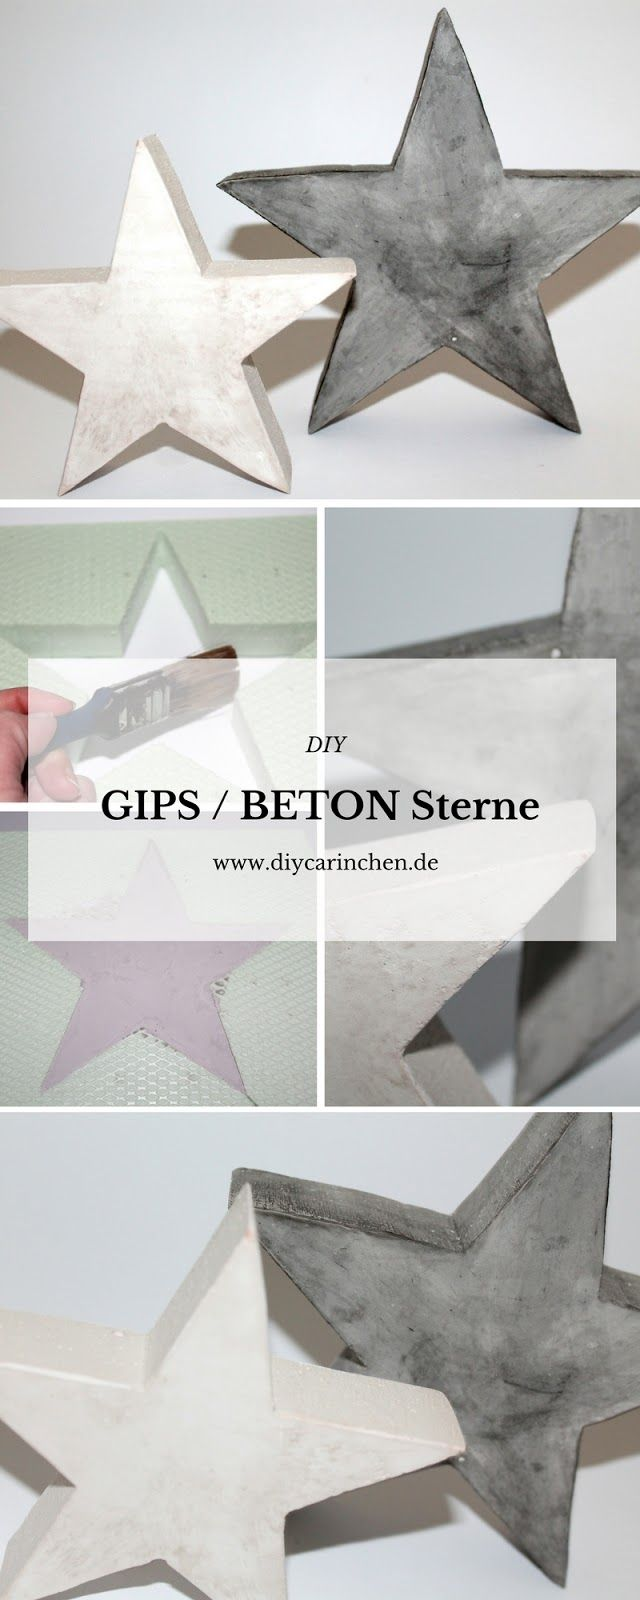 coole weihnachtsdekoration diy gips beton sterne selbst gie en diy deko ideen. Black Bedroom Furniture Sets. Home Design Ideas